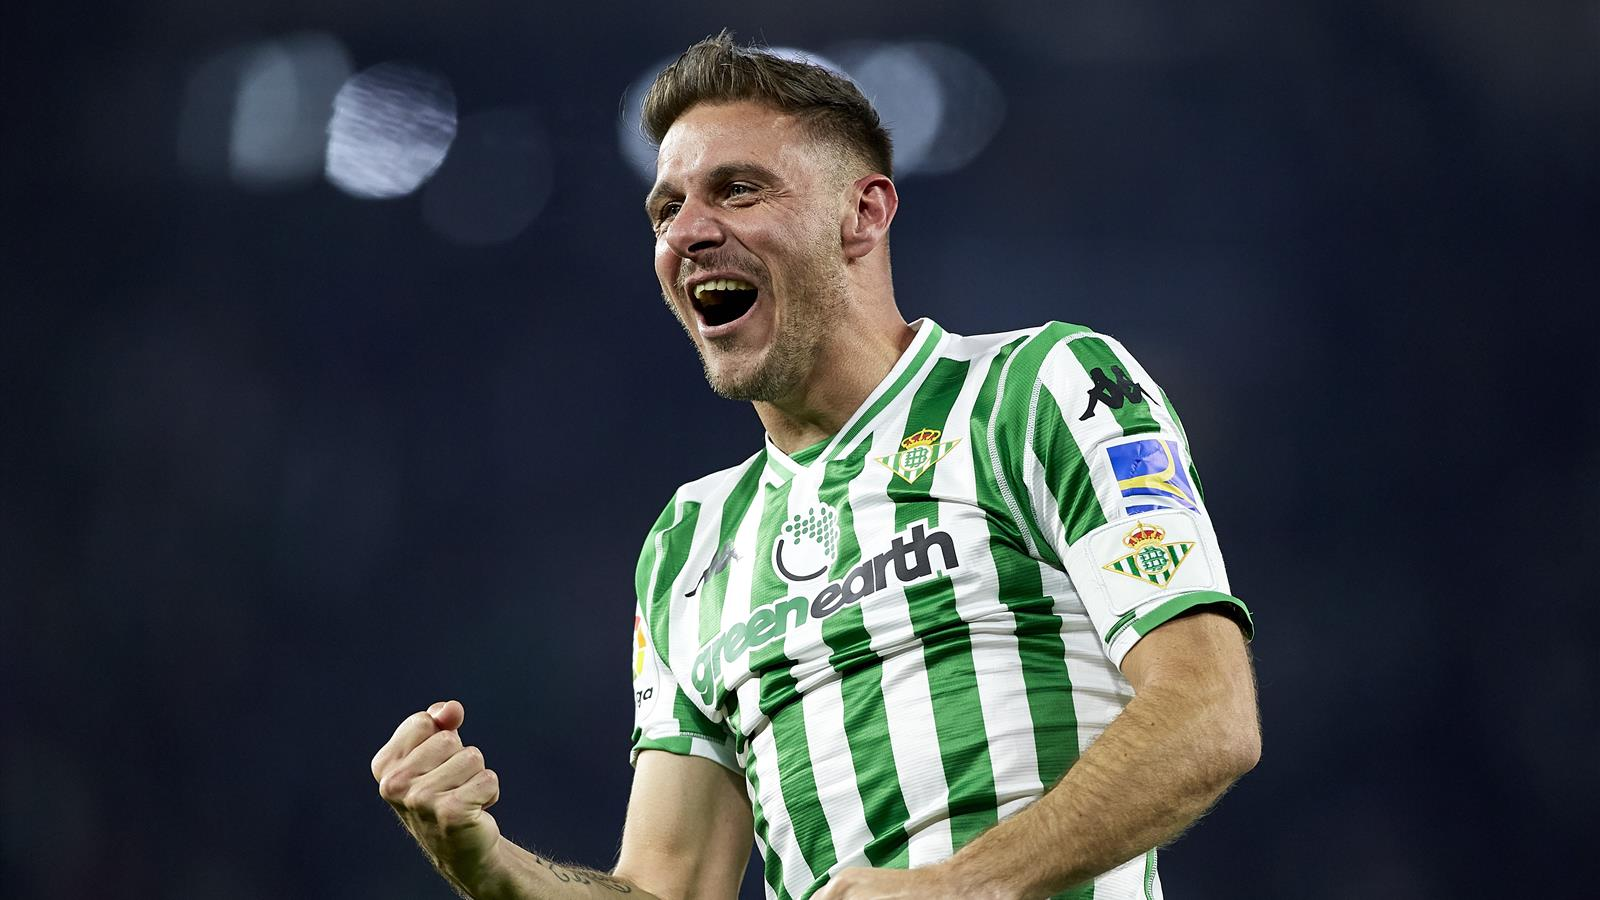 Football news - WATCH - Real Betis legend Joaquin scores direct from corner in semi-final